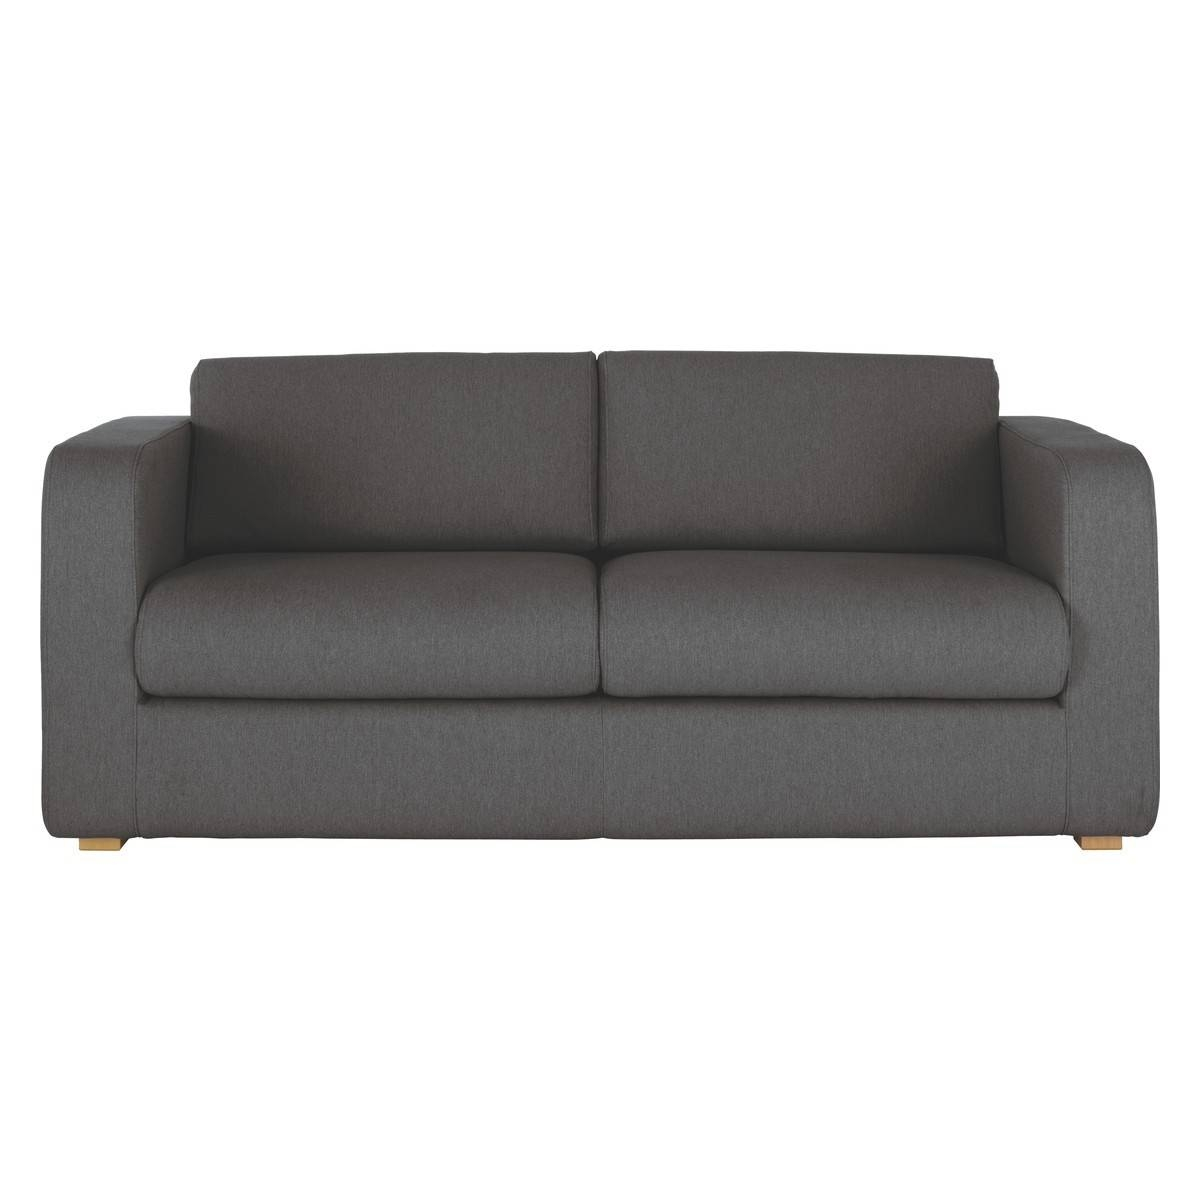 Porto Charcoal Fabric 3 Seater Sofa | Buy Now At Habitat Uk intended for 3 Seater Sofas For Sale (Image 15 of 30)